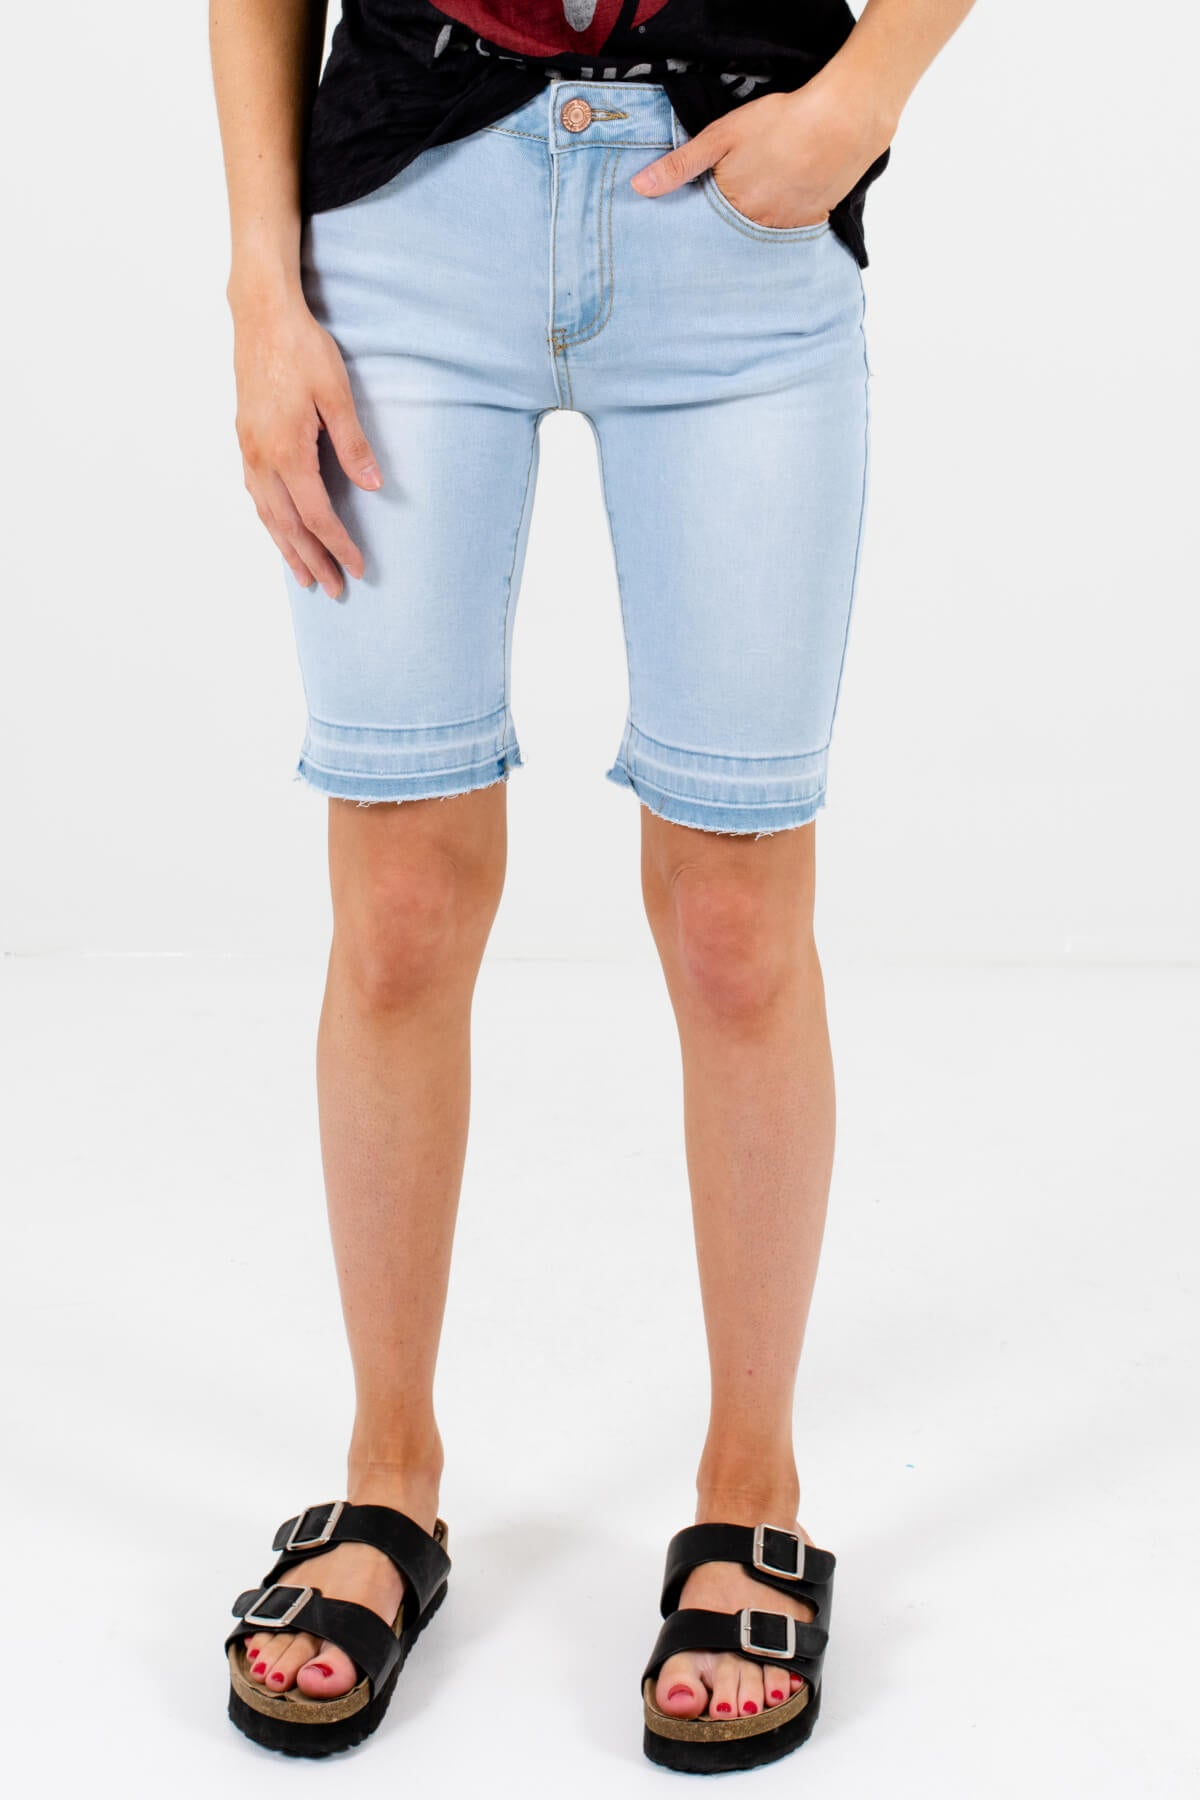 Light Wash Blue Denim Bermuda Style Boutique Shorts for Women